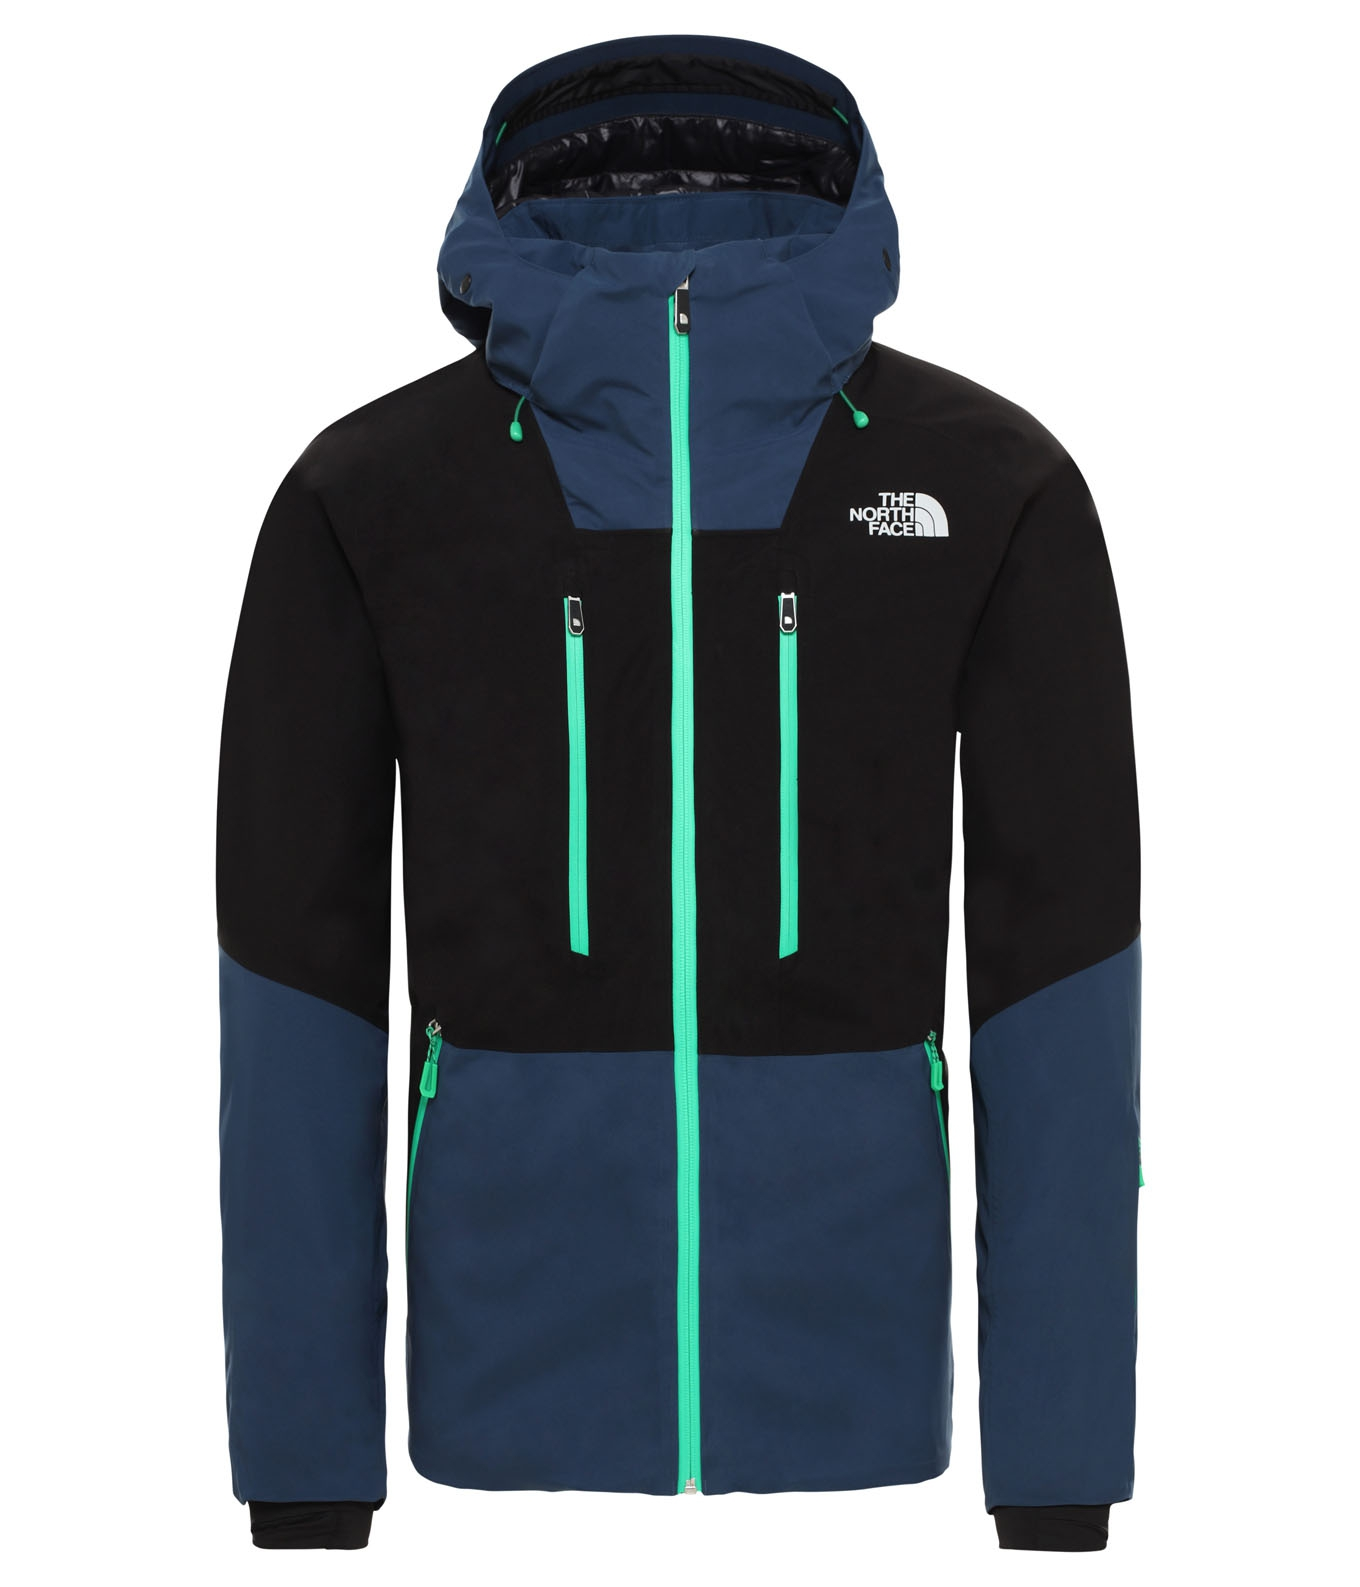 M Anonym Jacket Tnf BlackBlue Wing Teal